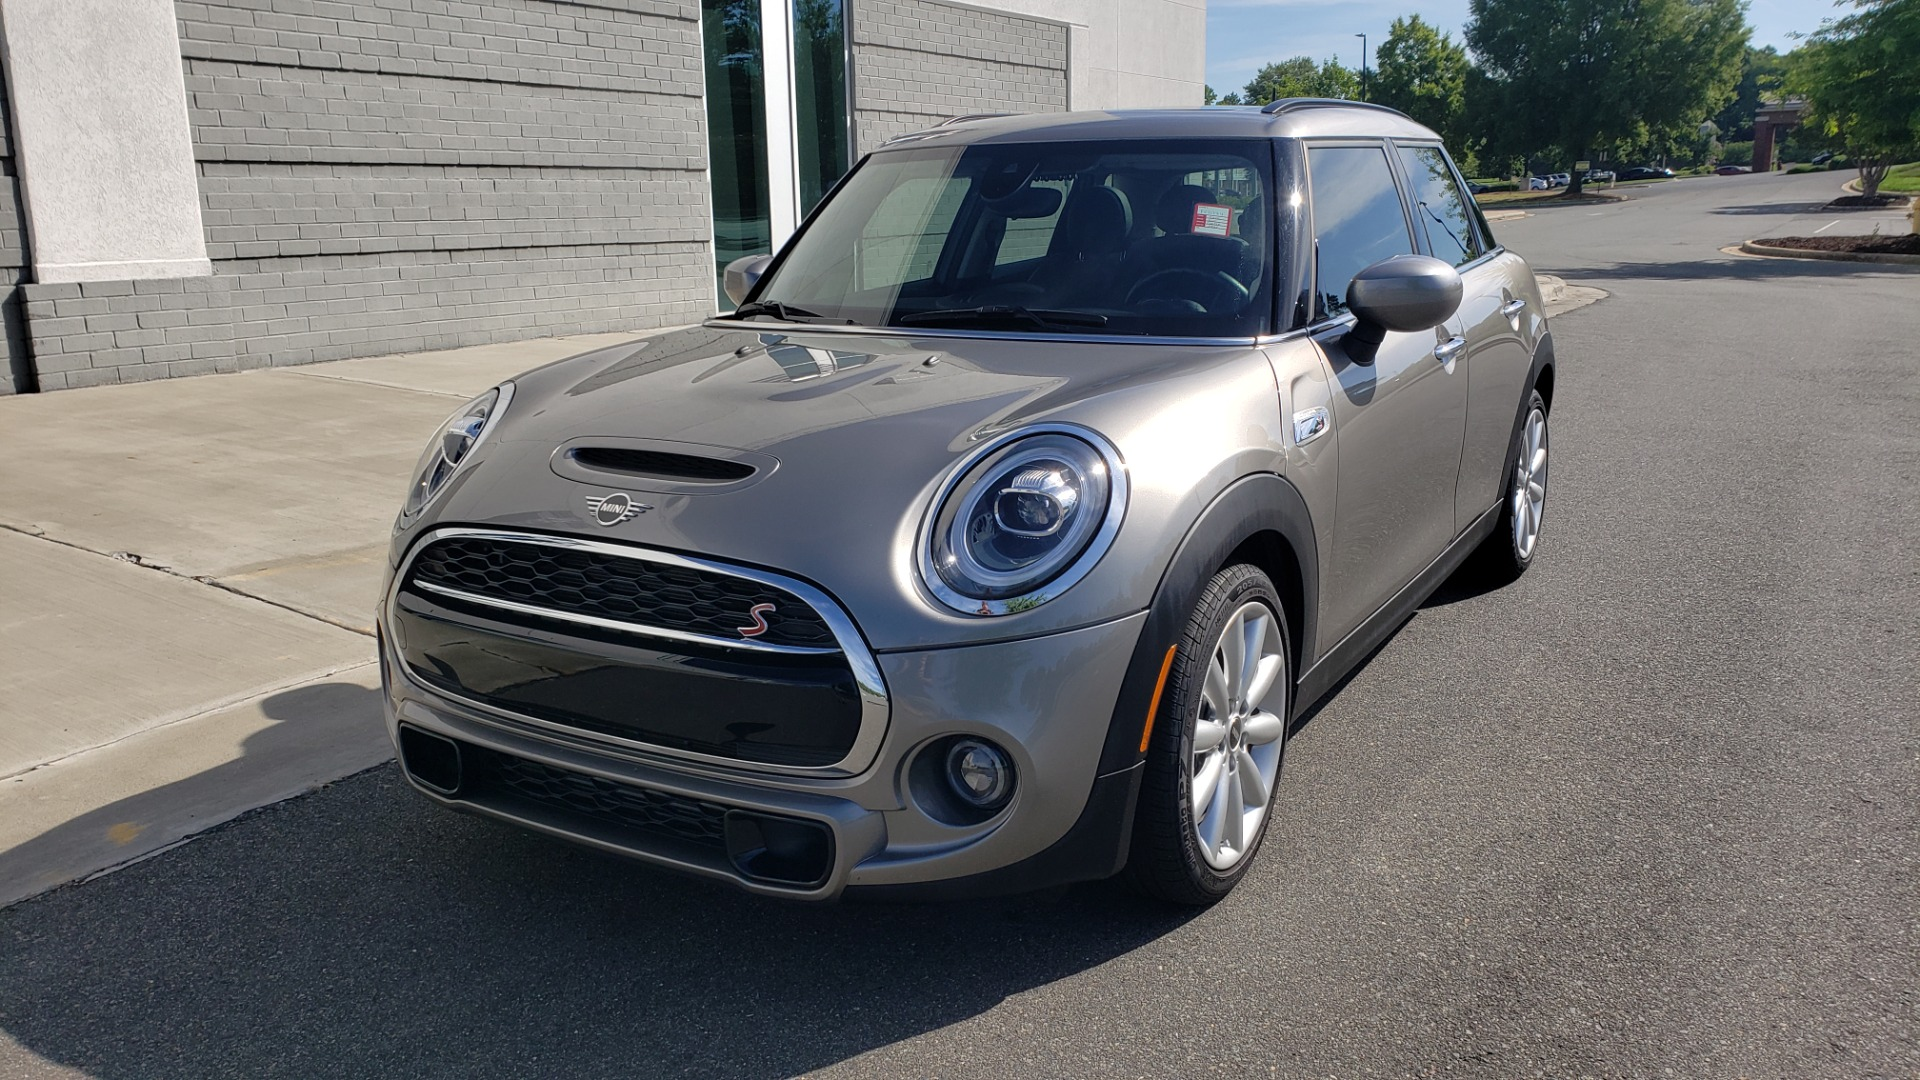 Used 2020 MINI HARDTOP 4 DOOR COOPER S / NAV / SUNROOF / AUTO / H/K SND / REARVIEW for sale $28,495 at Formula Imports in Charlotte NC 28227 2